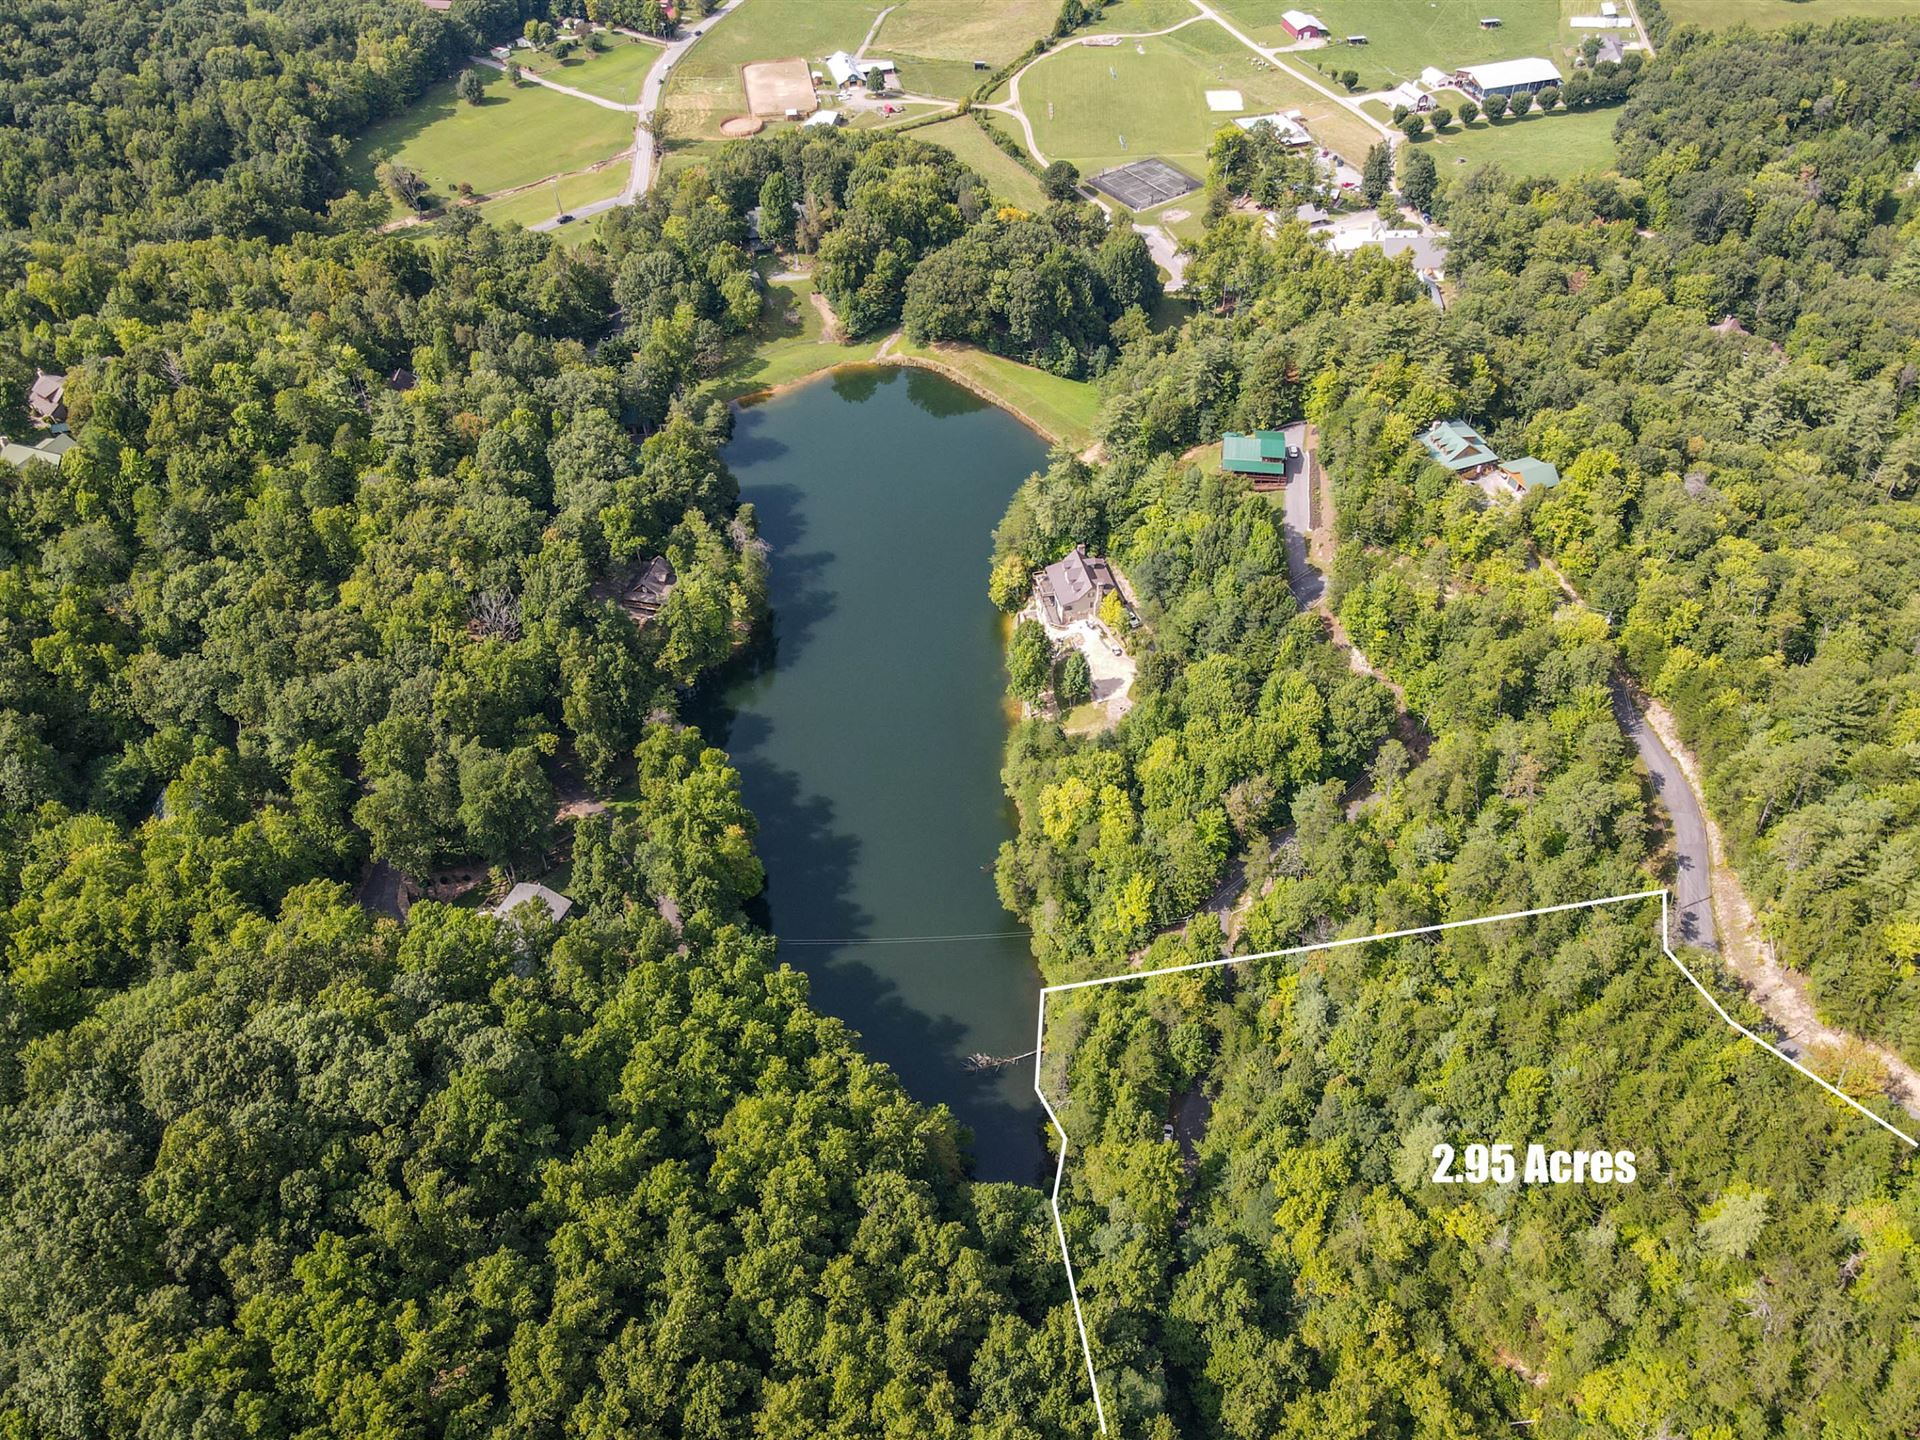 Photo for Lot 21 Marian Lake Way, Sevierville, TN 37862 (MLS # 1129970)